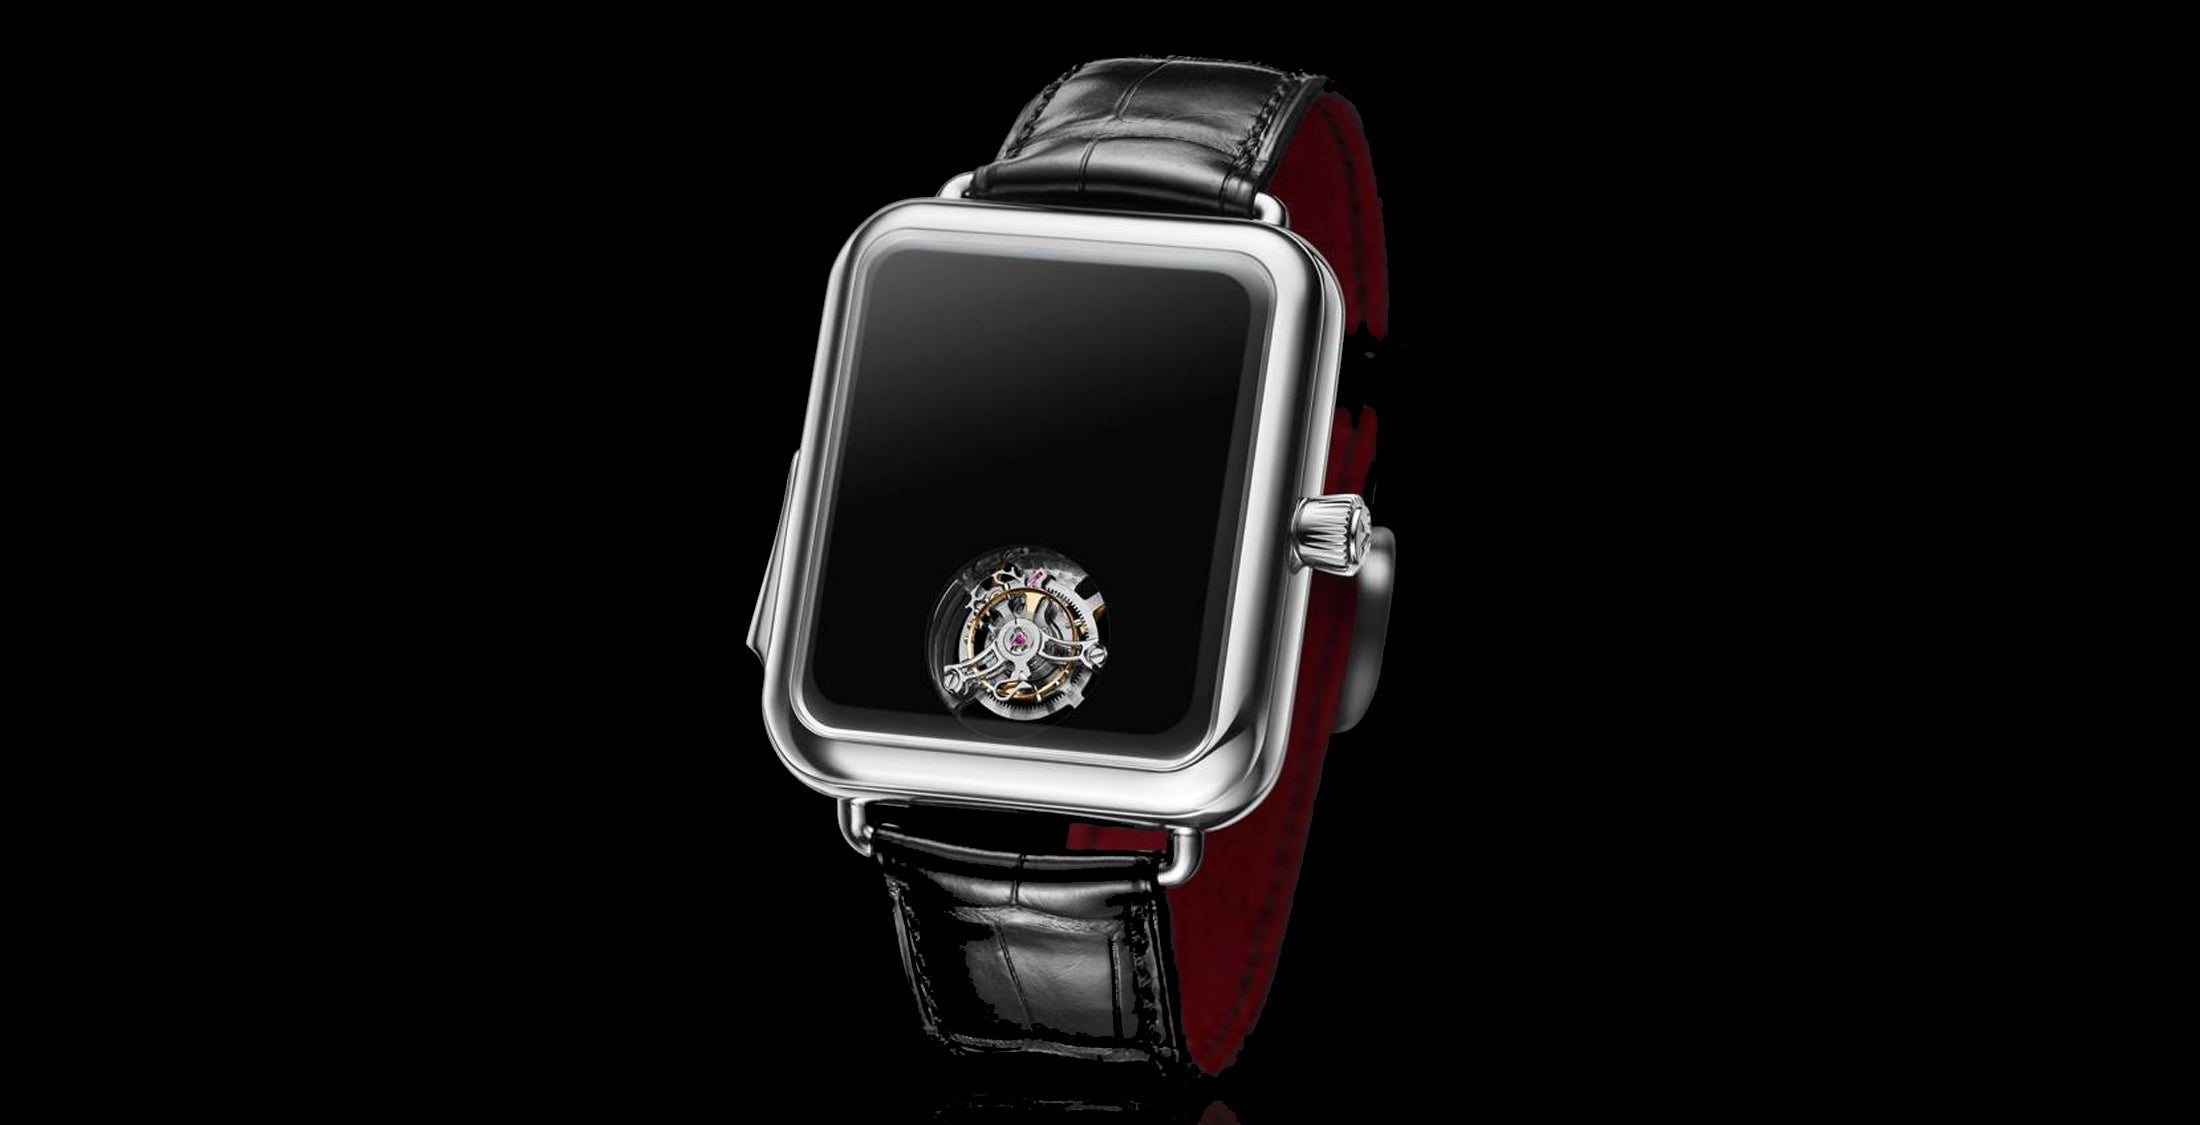 Moser built a zany $350,000 Apple Watch clone that tells time via sound | Trusted Reviews